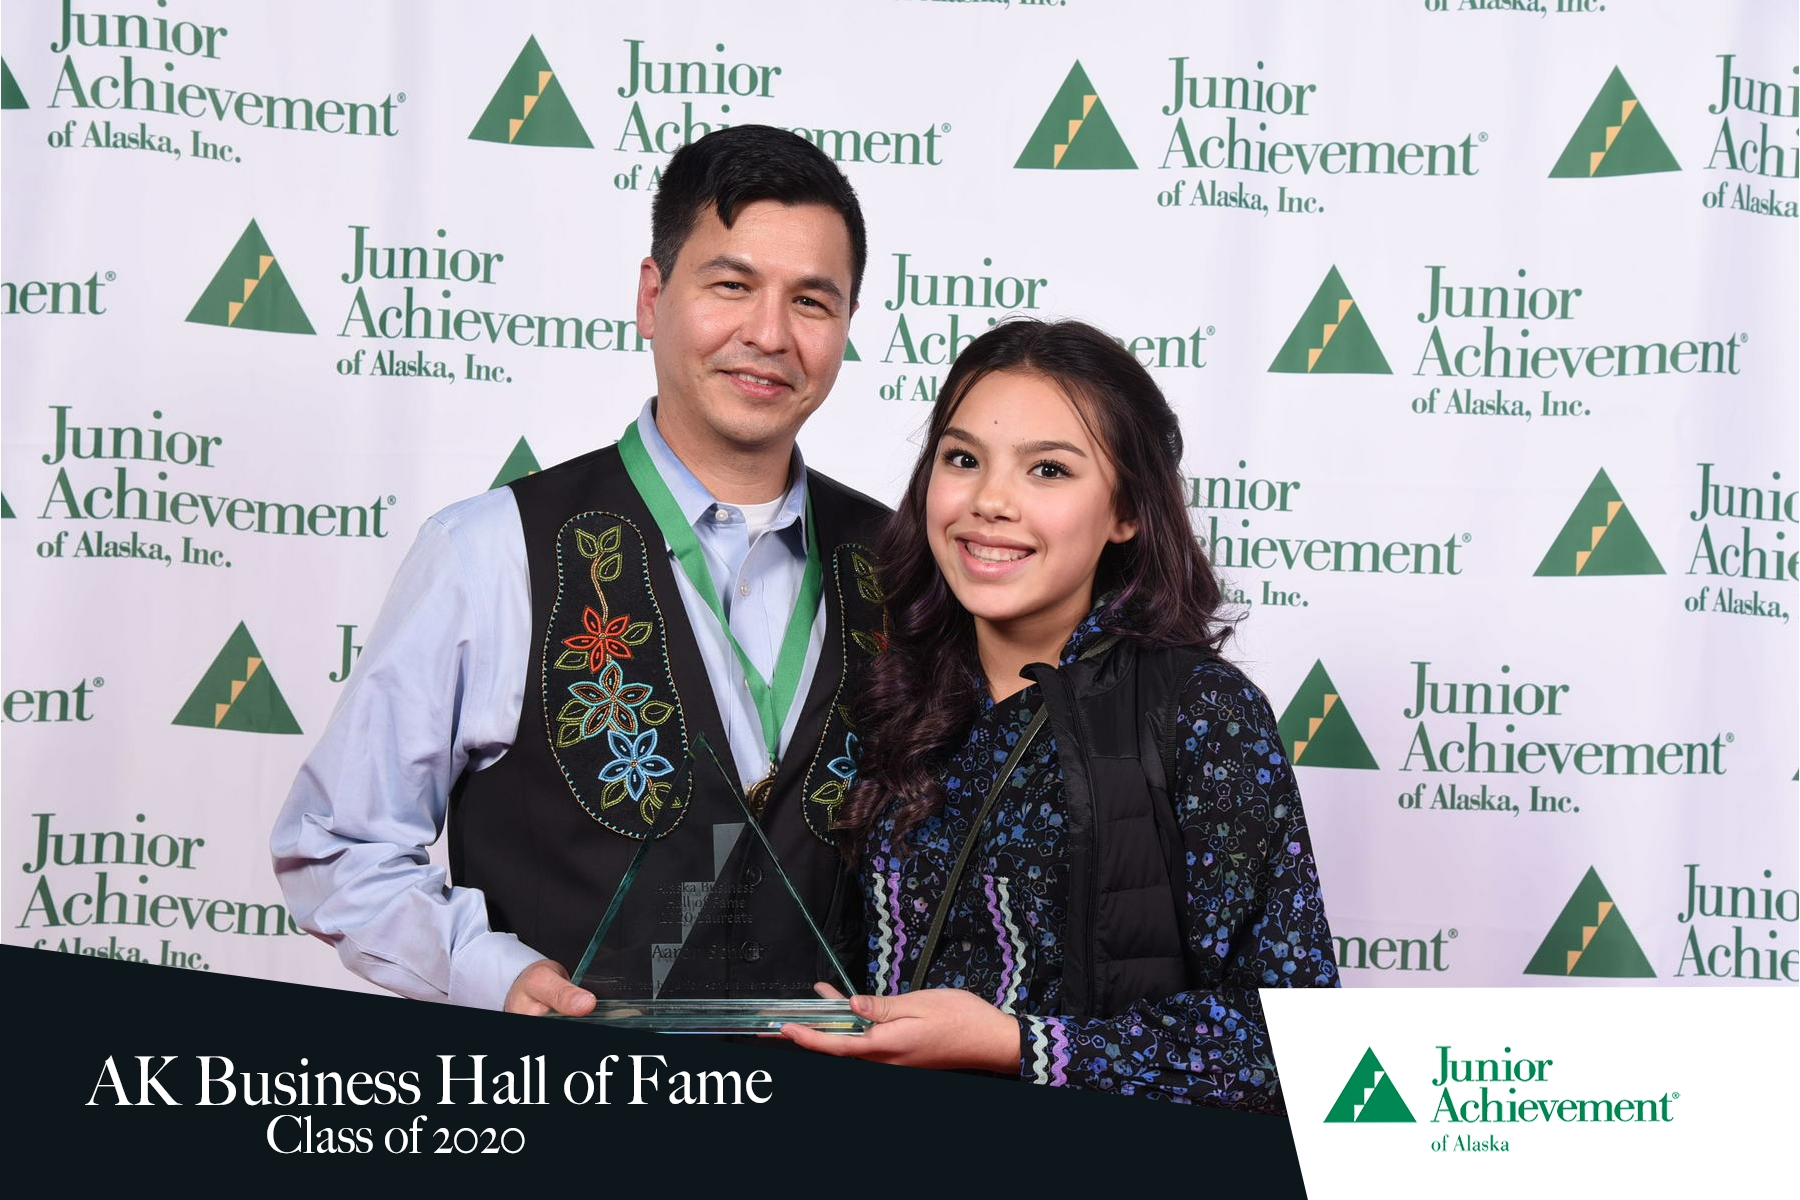 34th Annual Alaska Business Hall of Fame